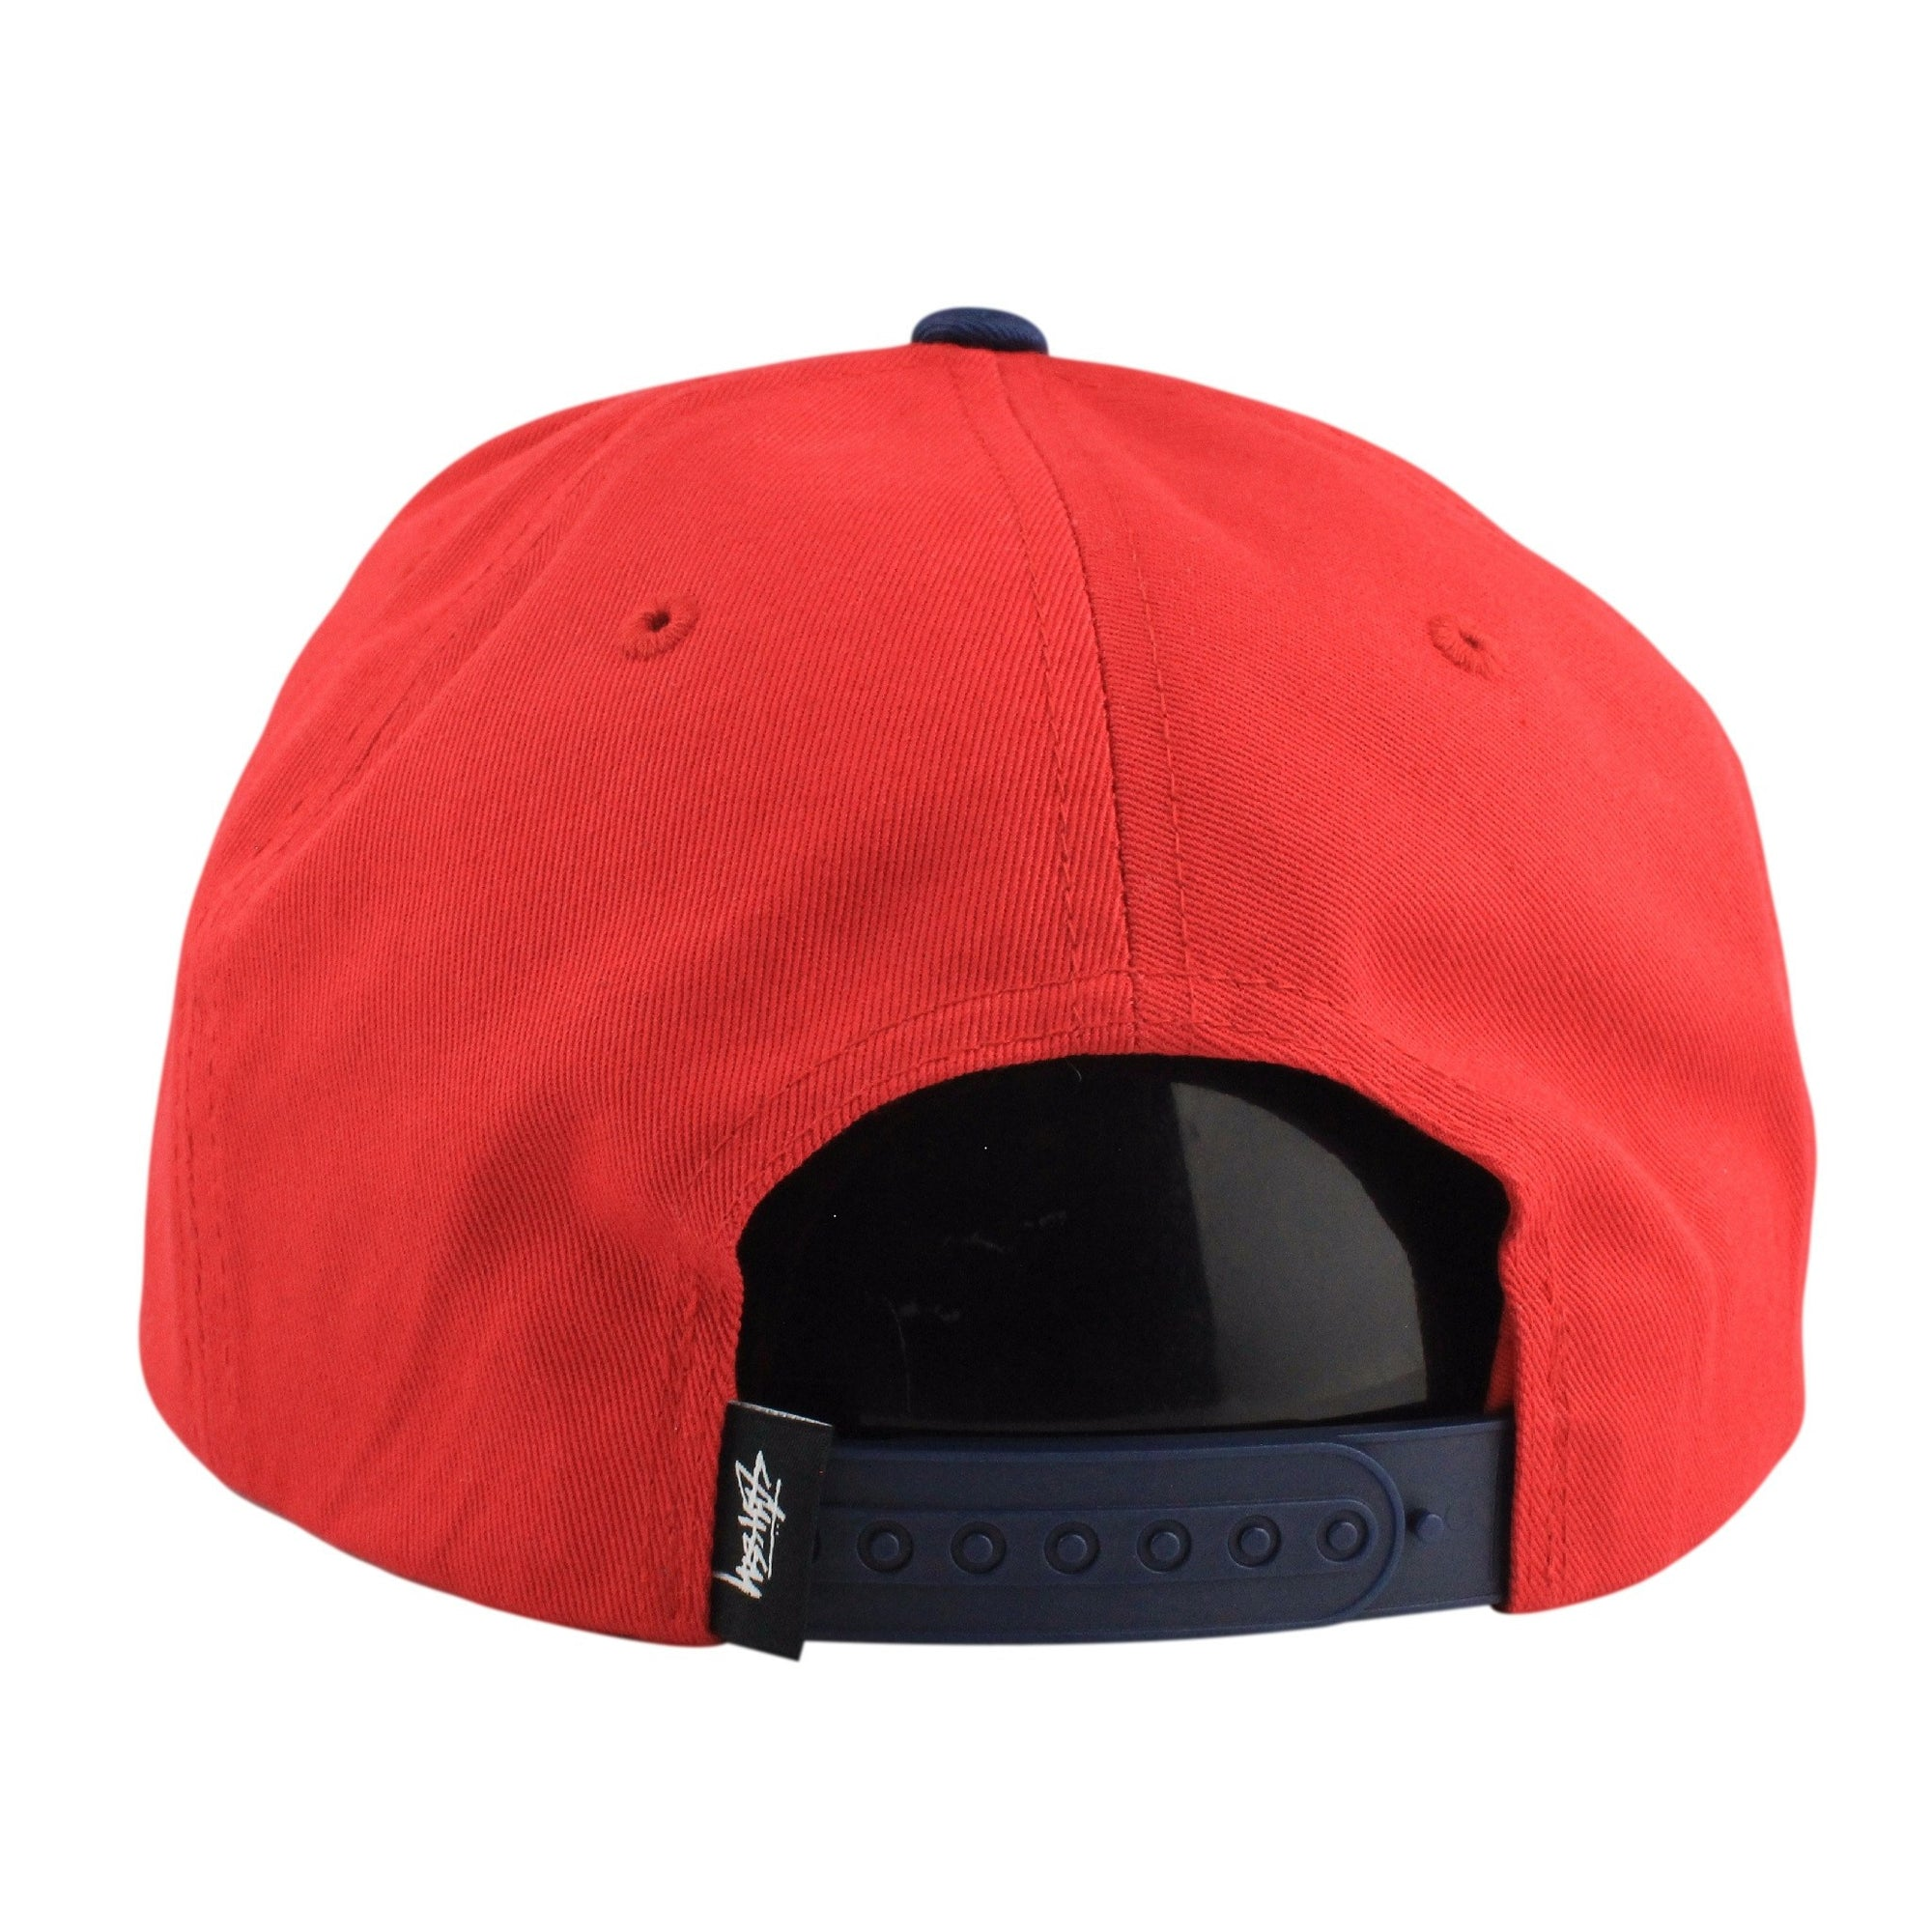 d115a129590 Stussy Stussy Stock Lock Red Blue Snapback